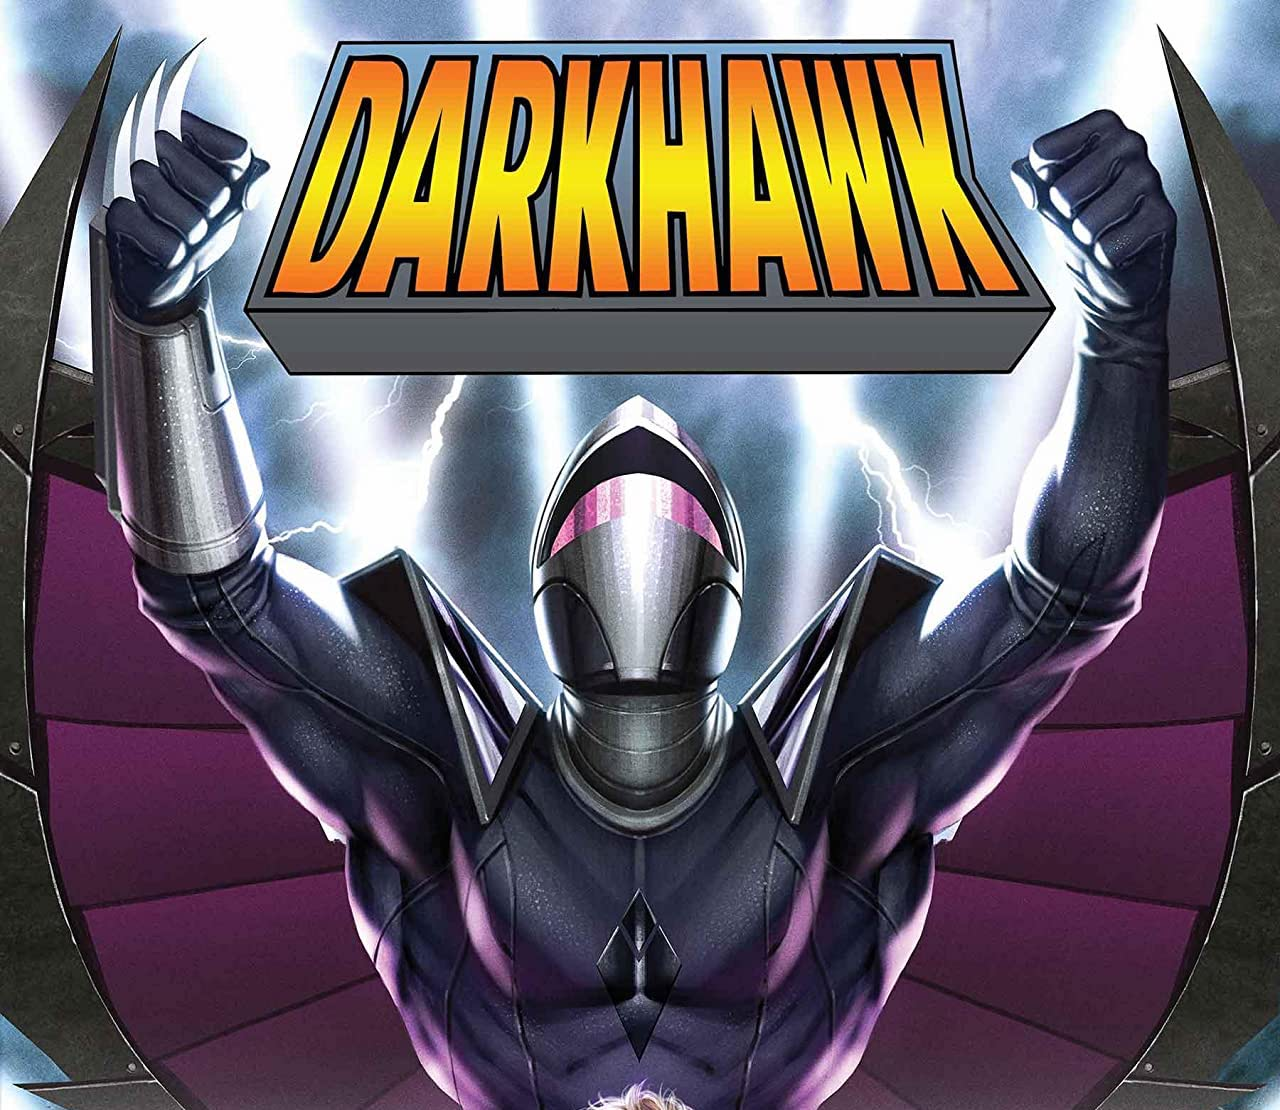 'Darkhawk: Heart of the Hawk' #1 cleverly connects three tales